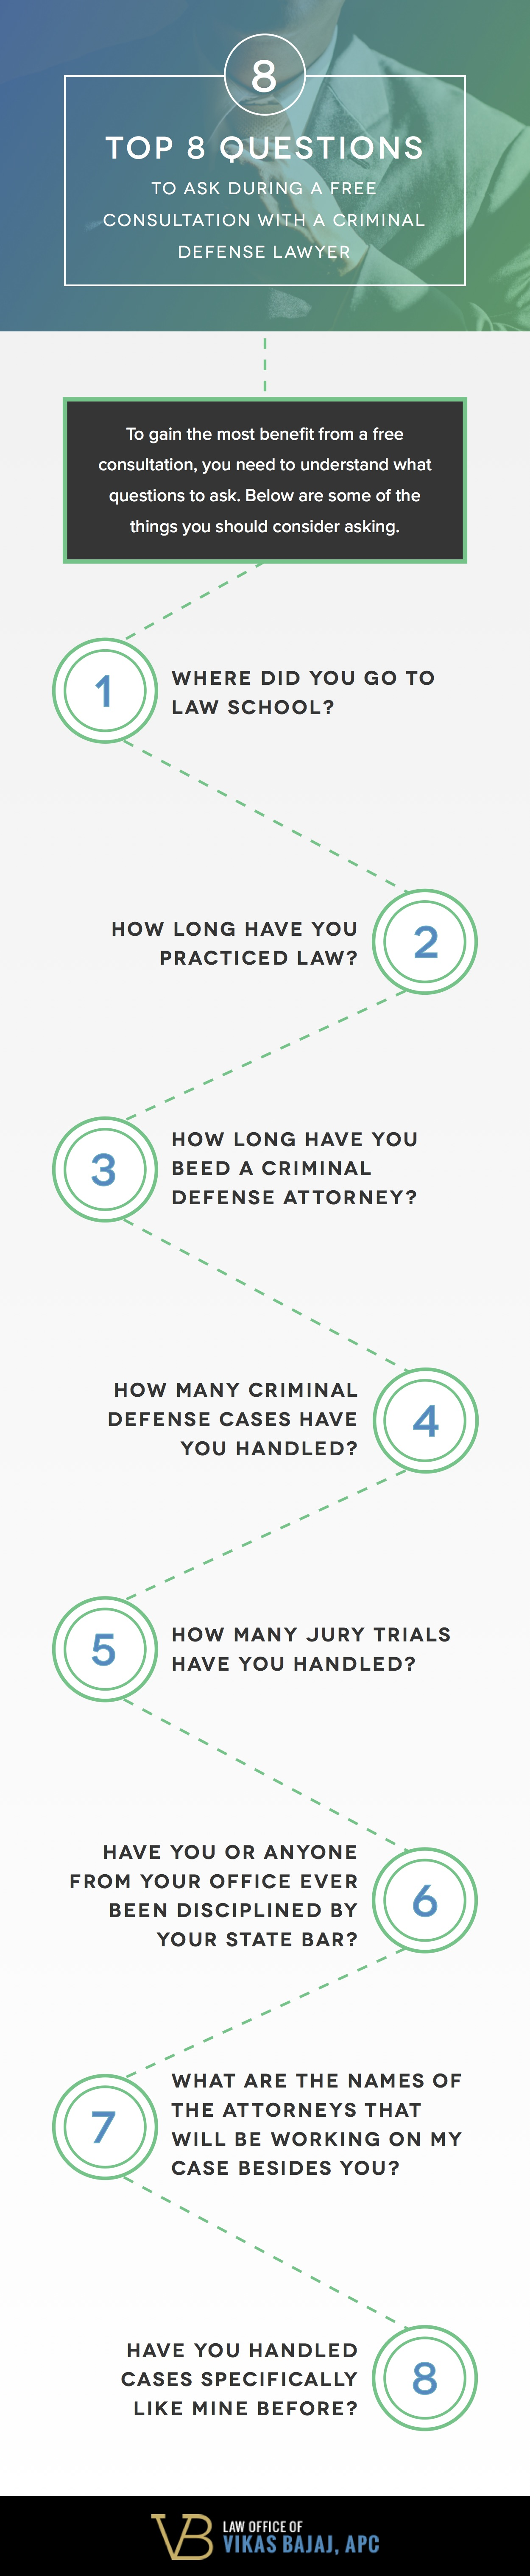 Top 8 Questions to Ask Your Criminal Defense Attorney